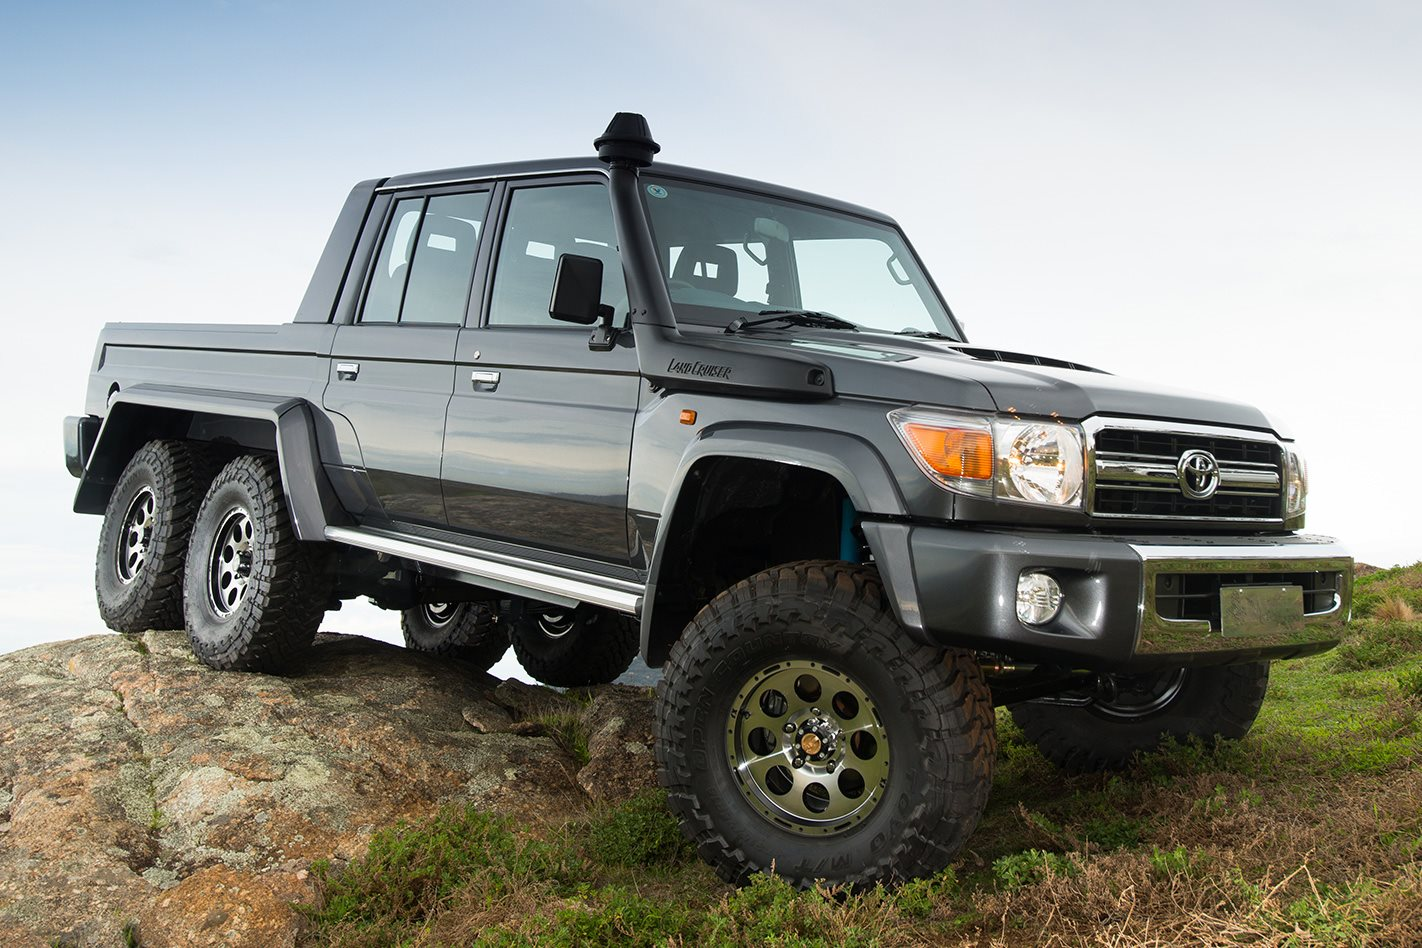 Mdt Southern Scorpion 6x6 Landcruiser Review